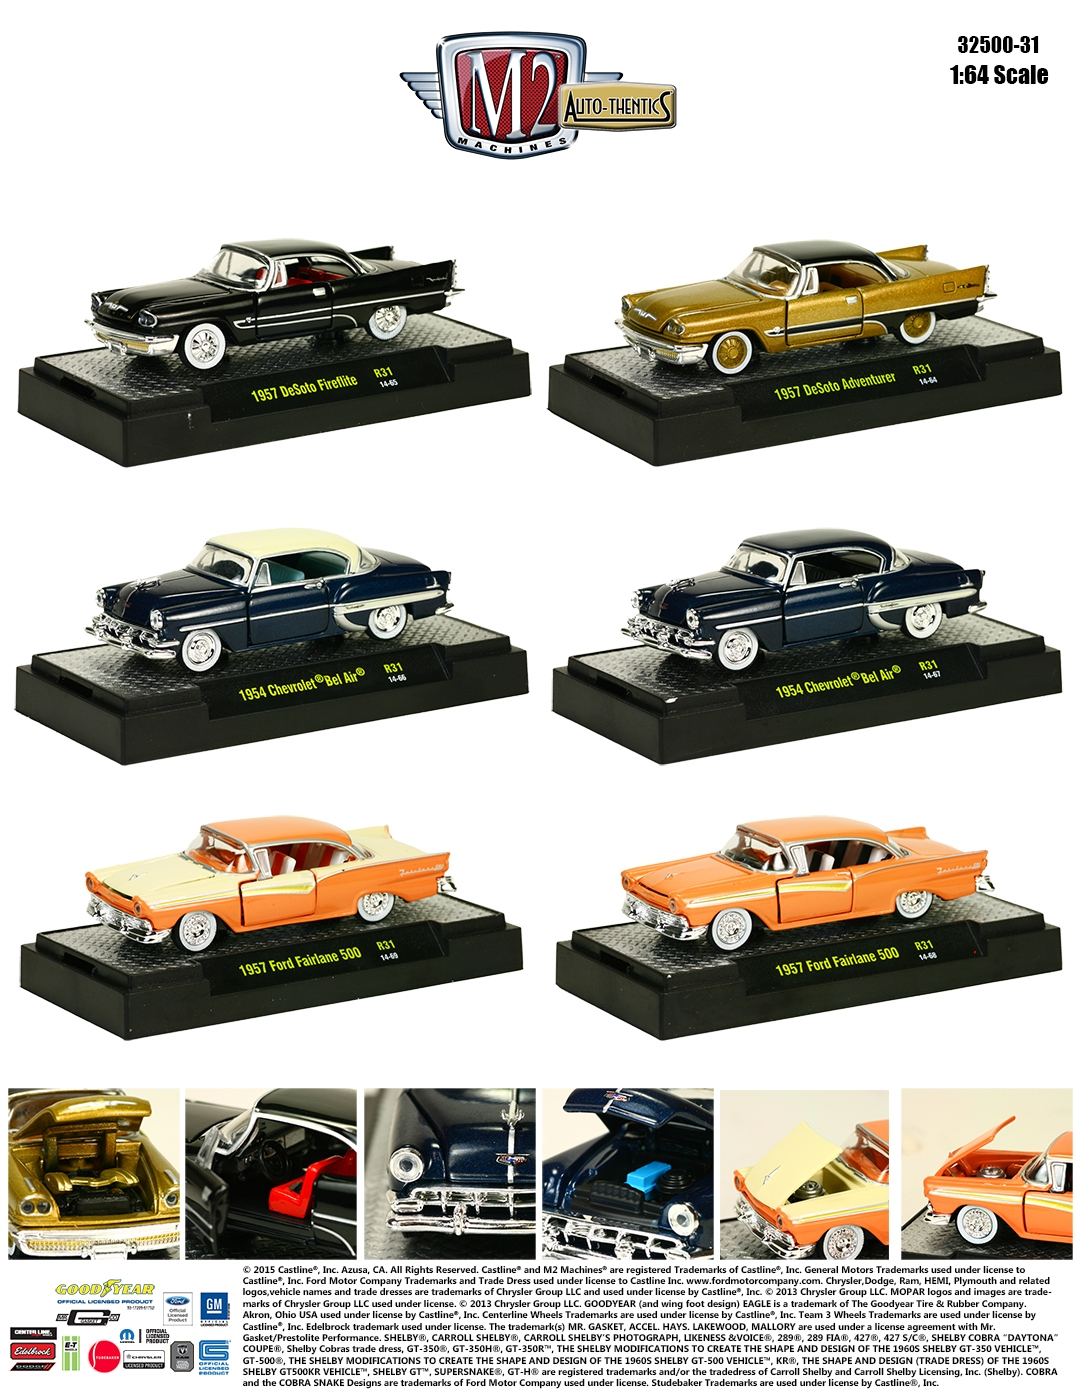 Die Cast X - Page 23 of 157 - Diecast Model Cars | Diecast